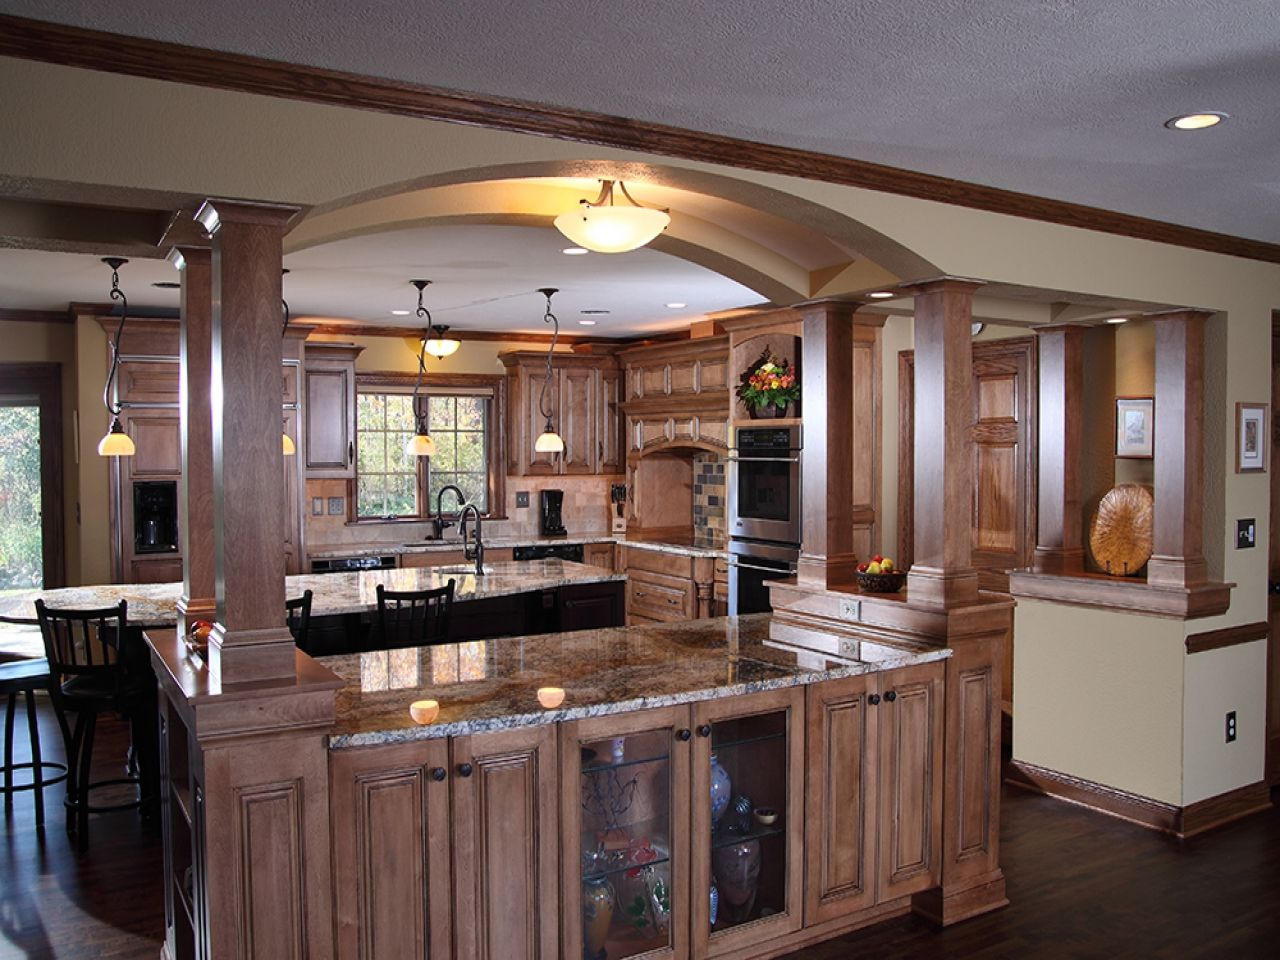 arch with attached kitchen island open shelves kitchen kitchen islands with columns and. Black Bedroom Furniture Sets. Home Design Ideas